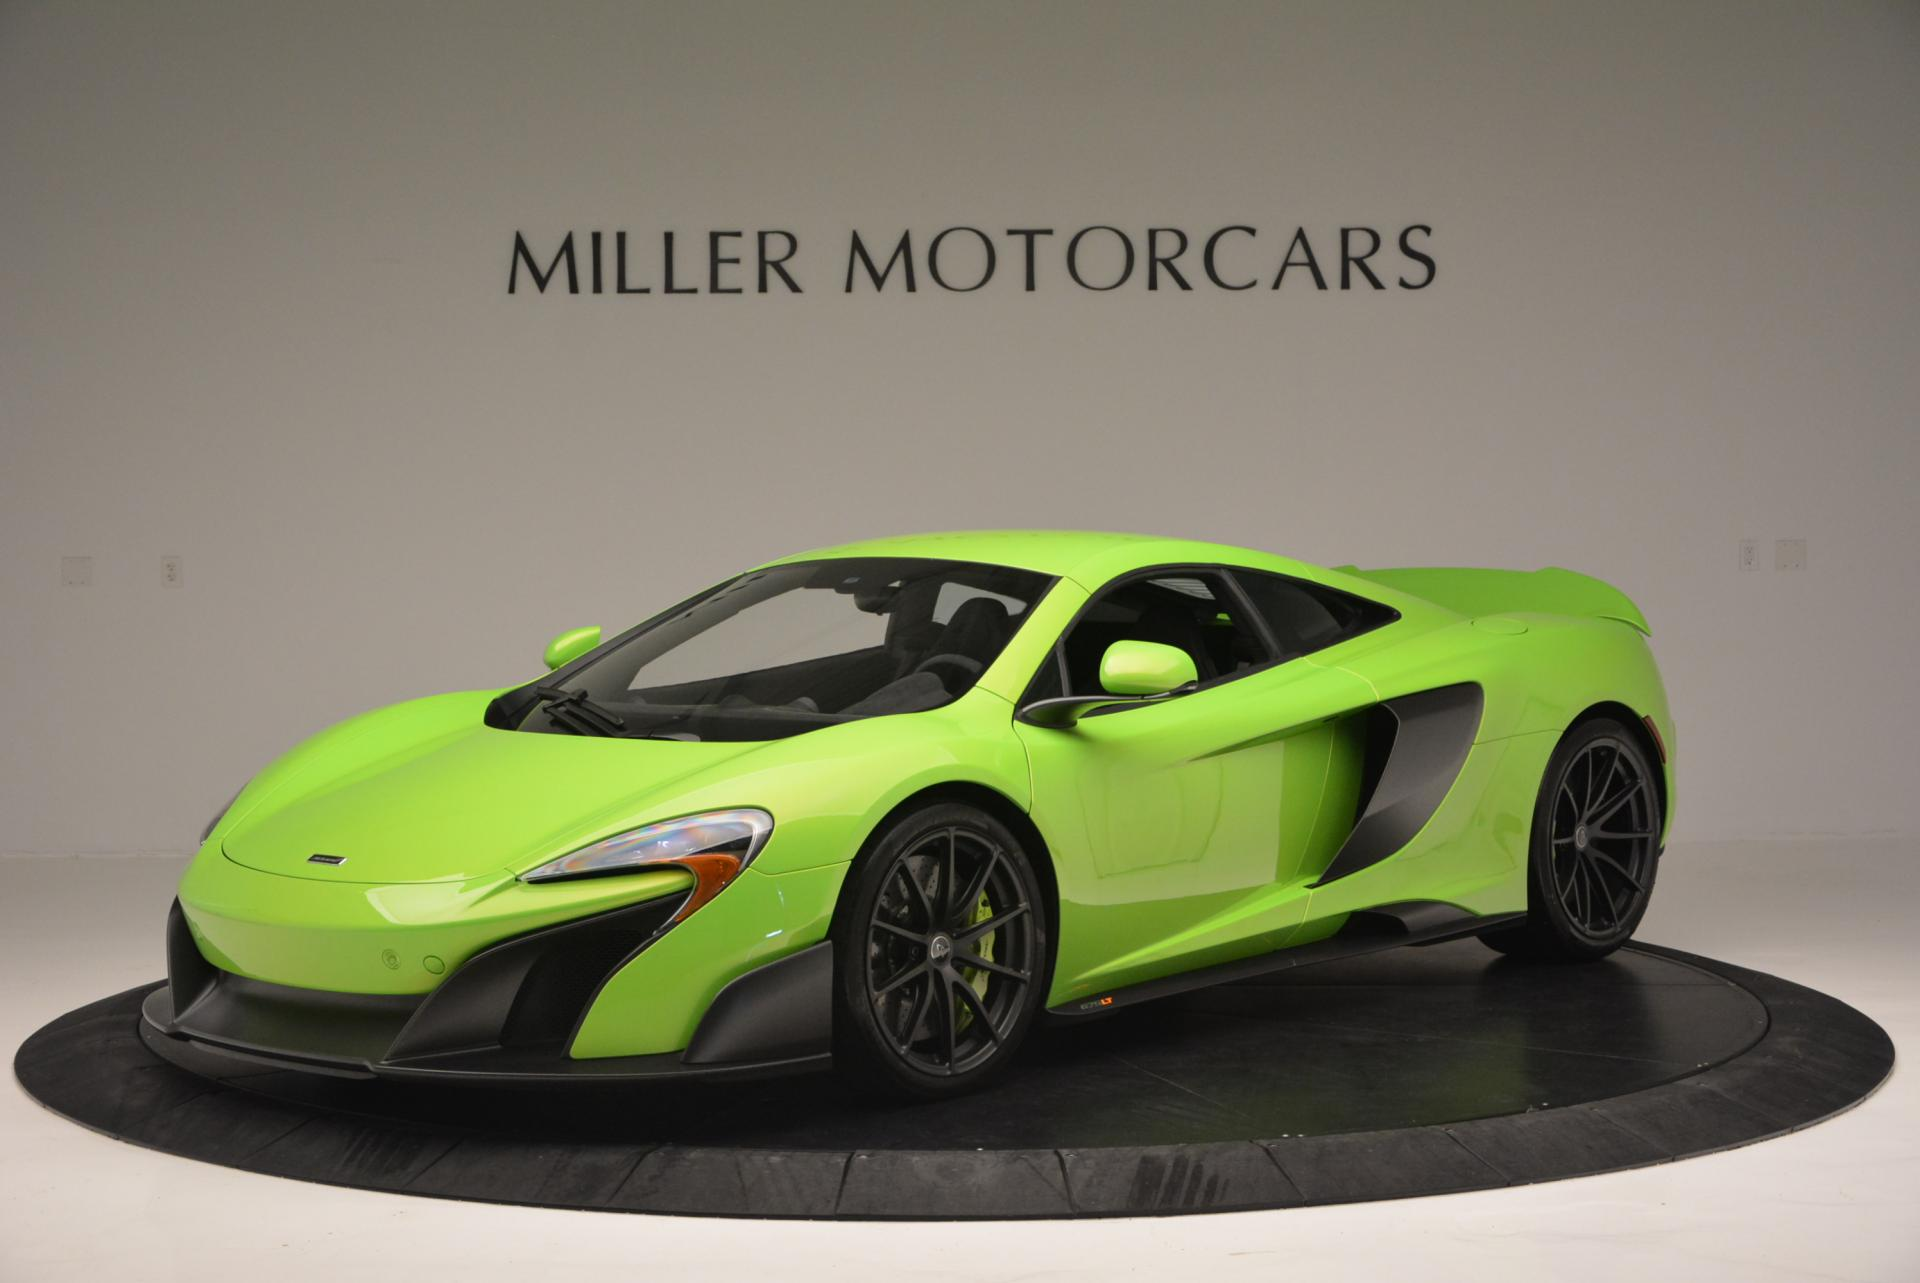 Used 2016 McLaren 675LT Coupe for sale $249,900 at Bentley Greenwich in Greenwich CT 06830 1